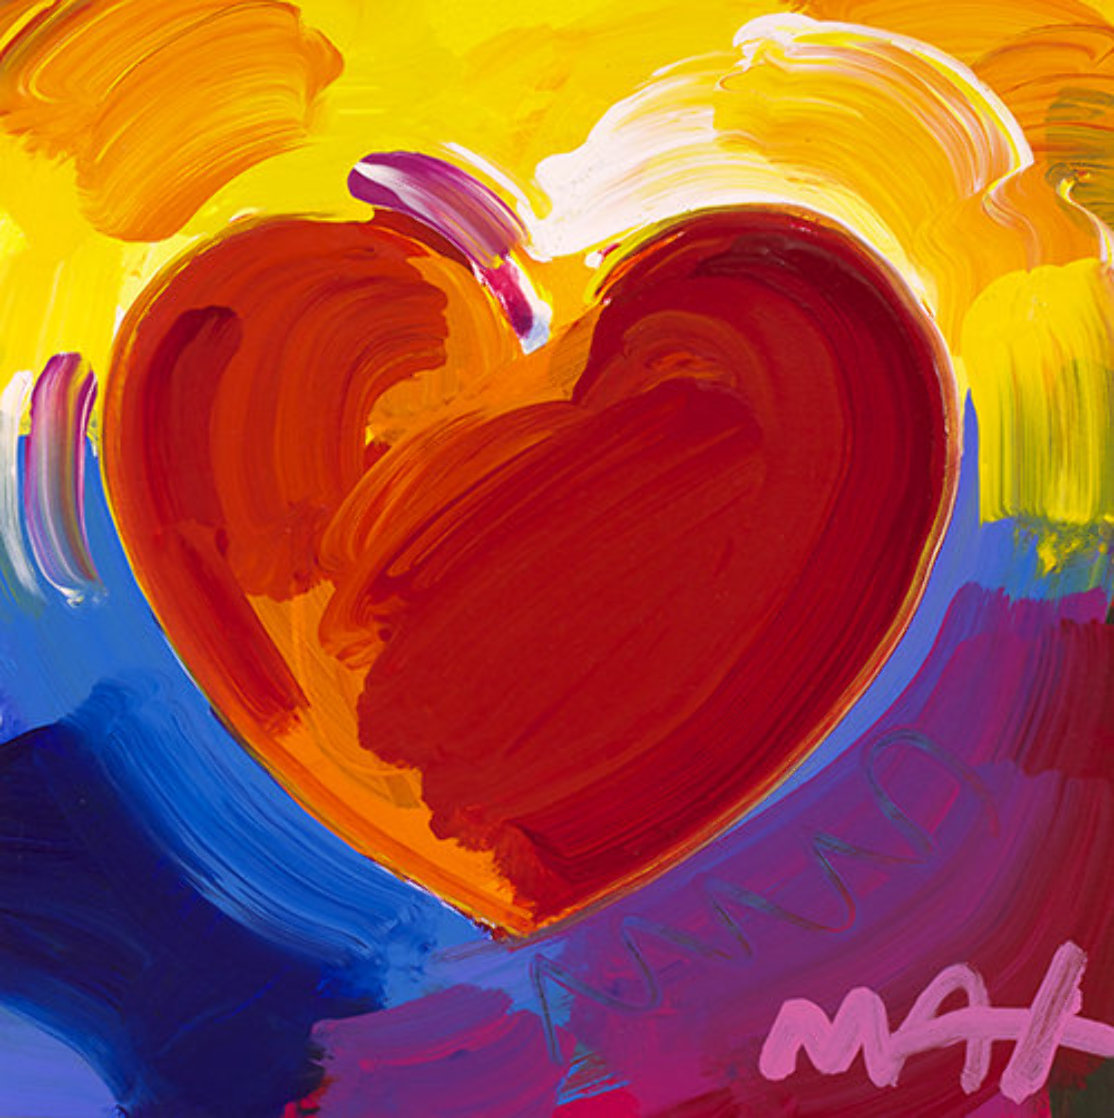 Heart Series II Ver. II #29  Unique 2019 11x11 Works on Paper (not prints) by Peter Max